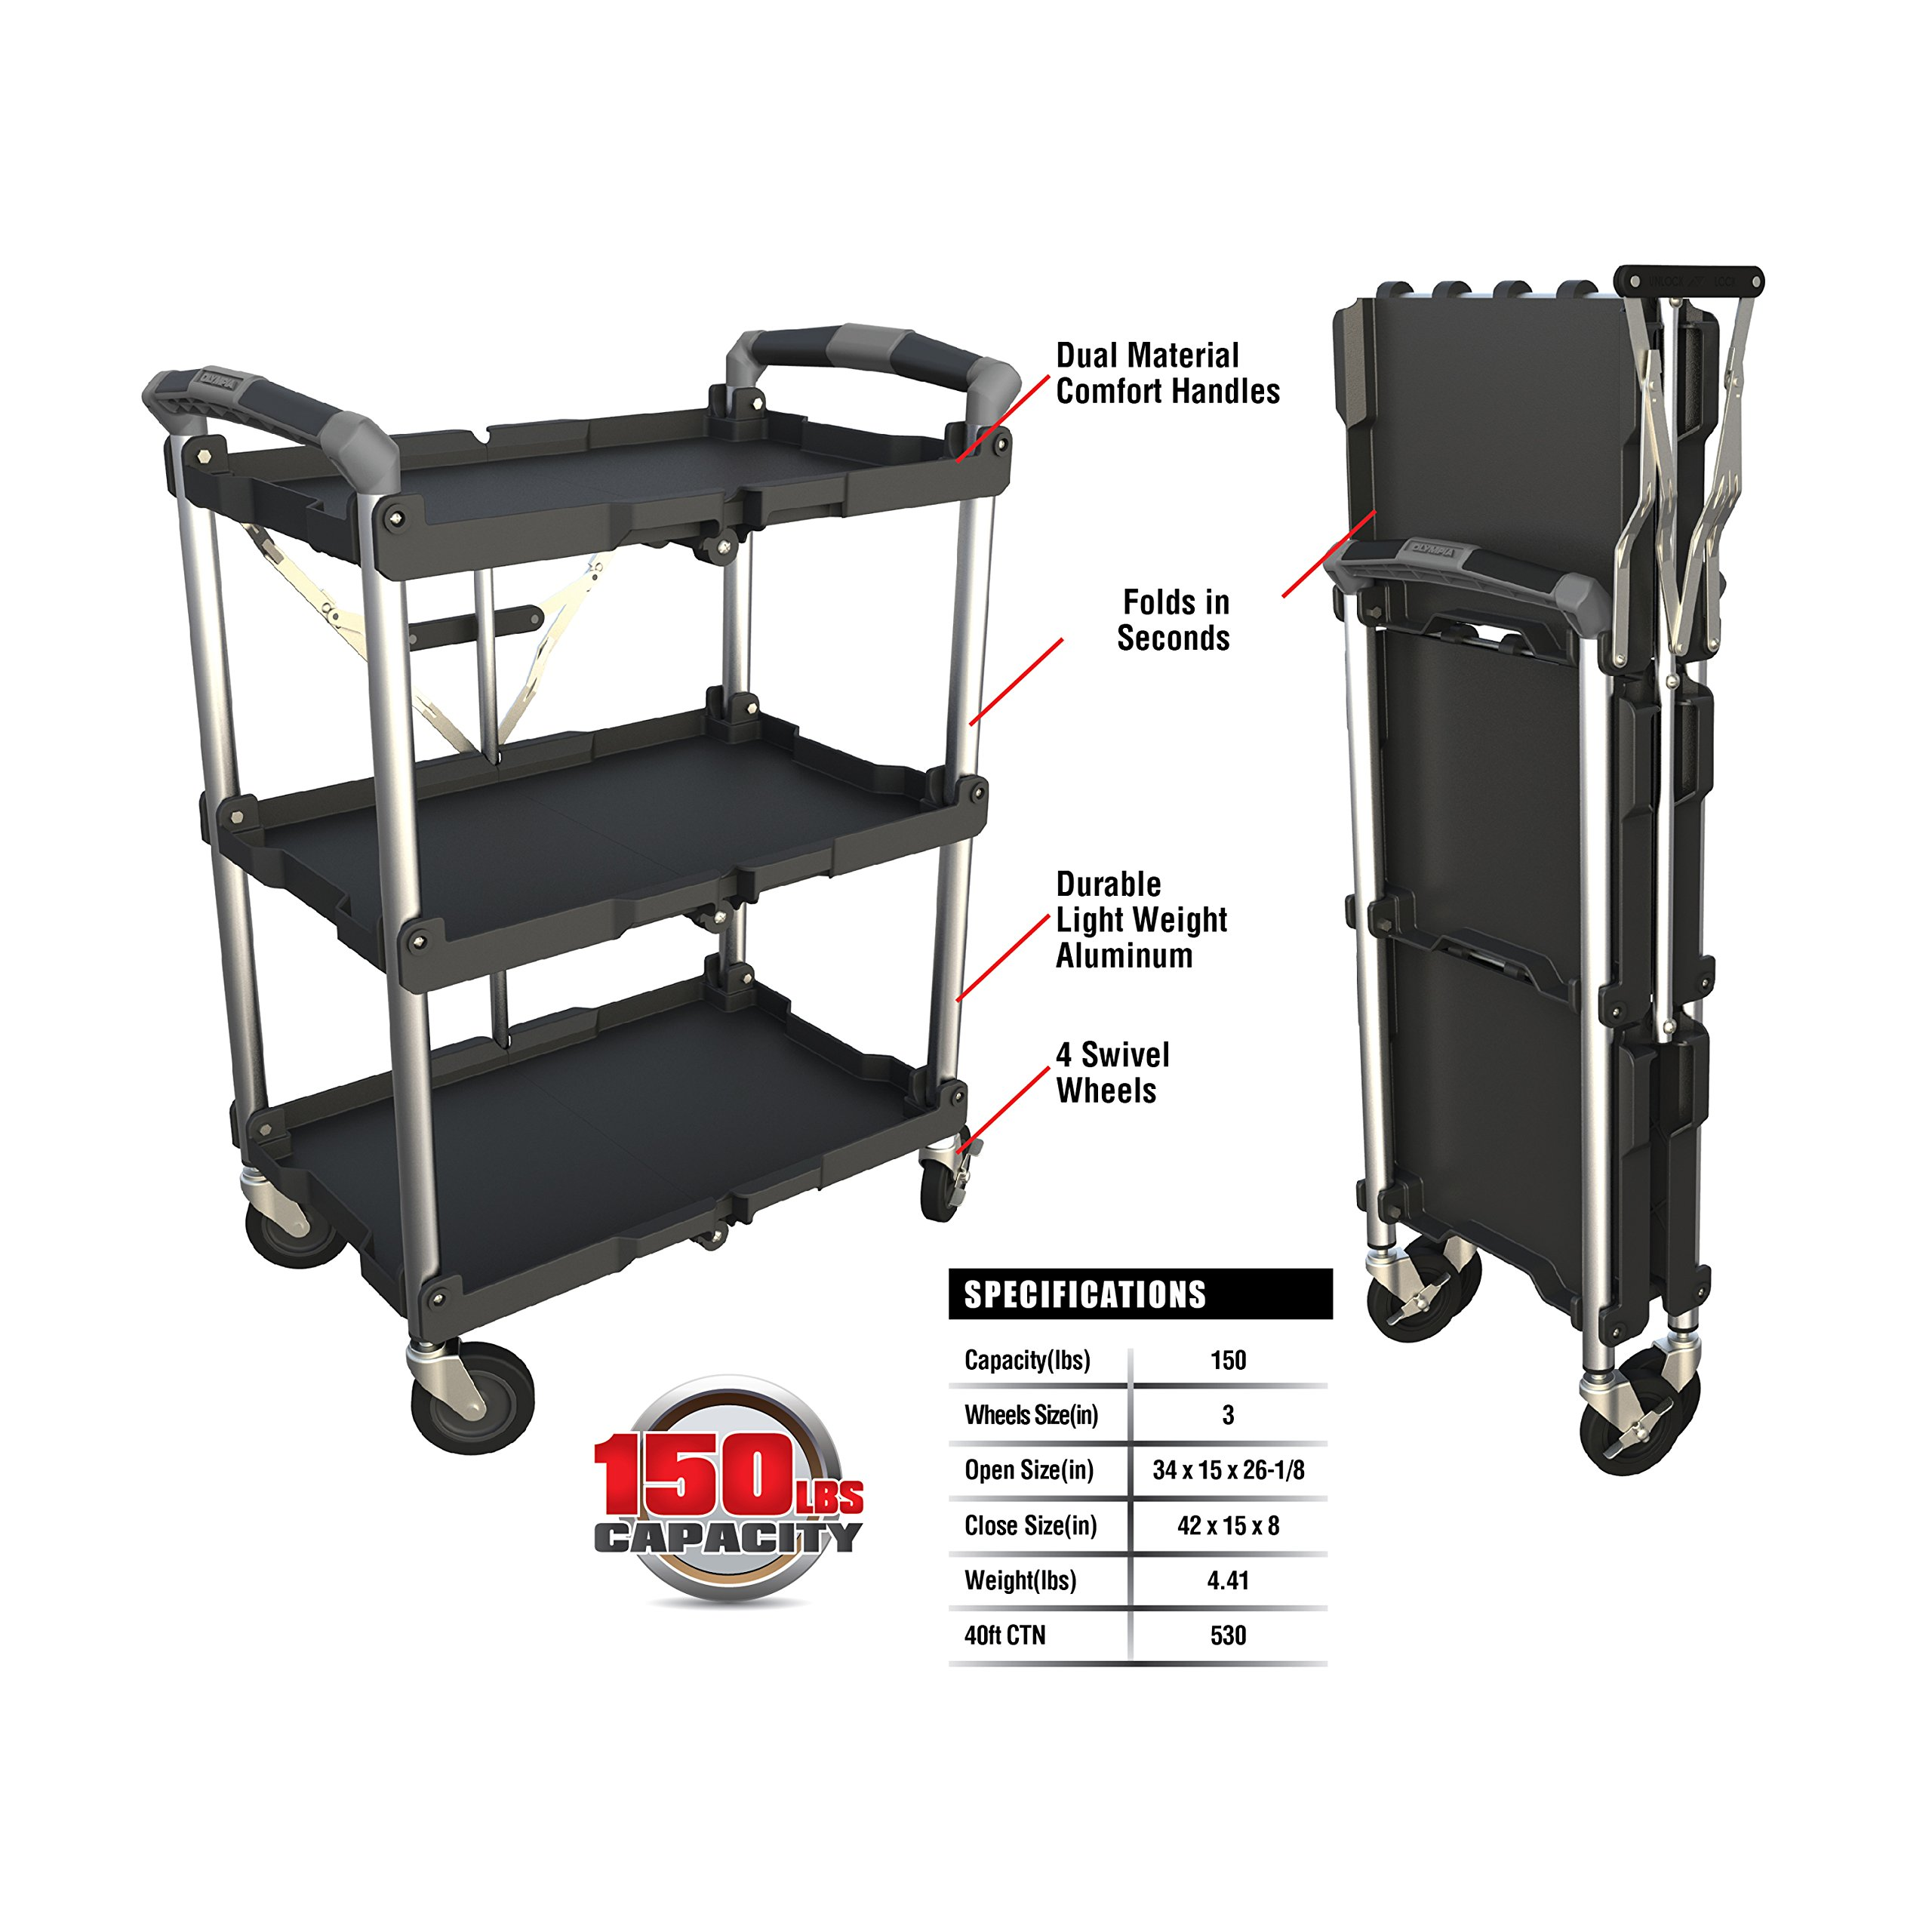 Olympia Tools 85-188 Collapsible Service Cart by Olympia Tools